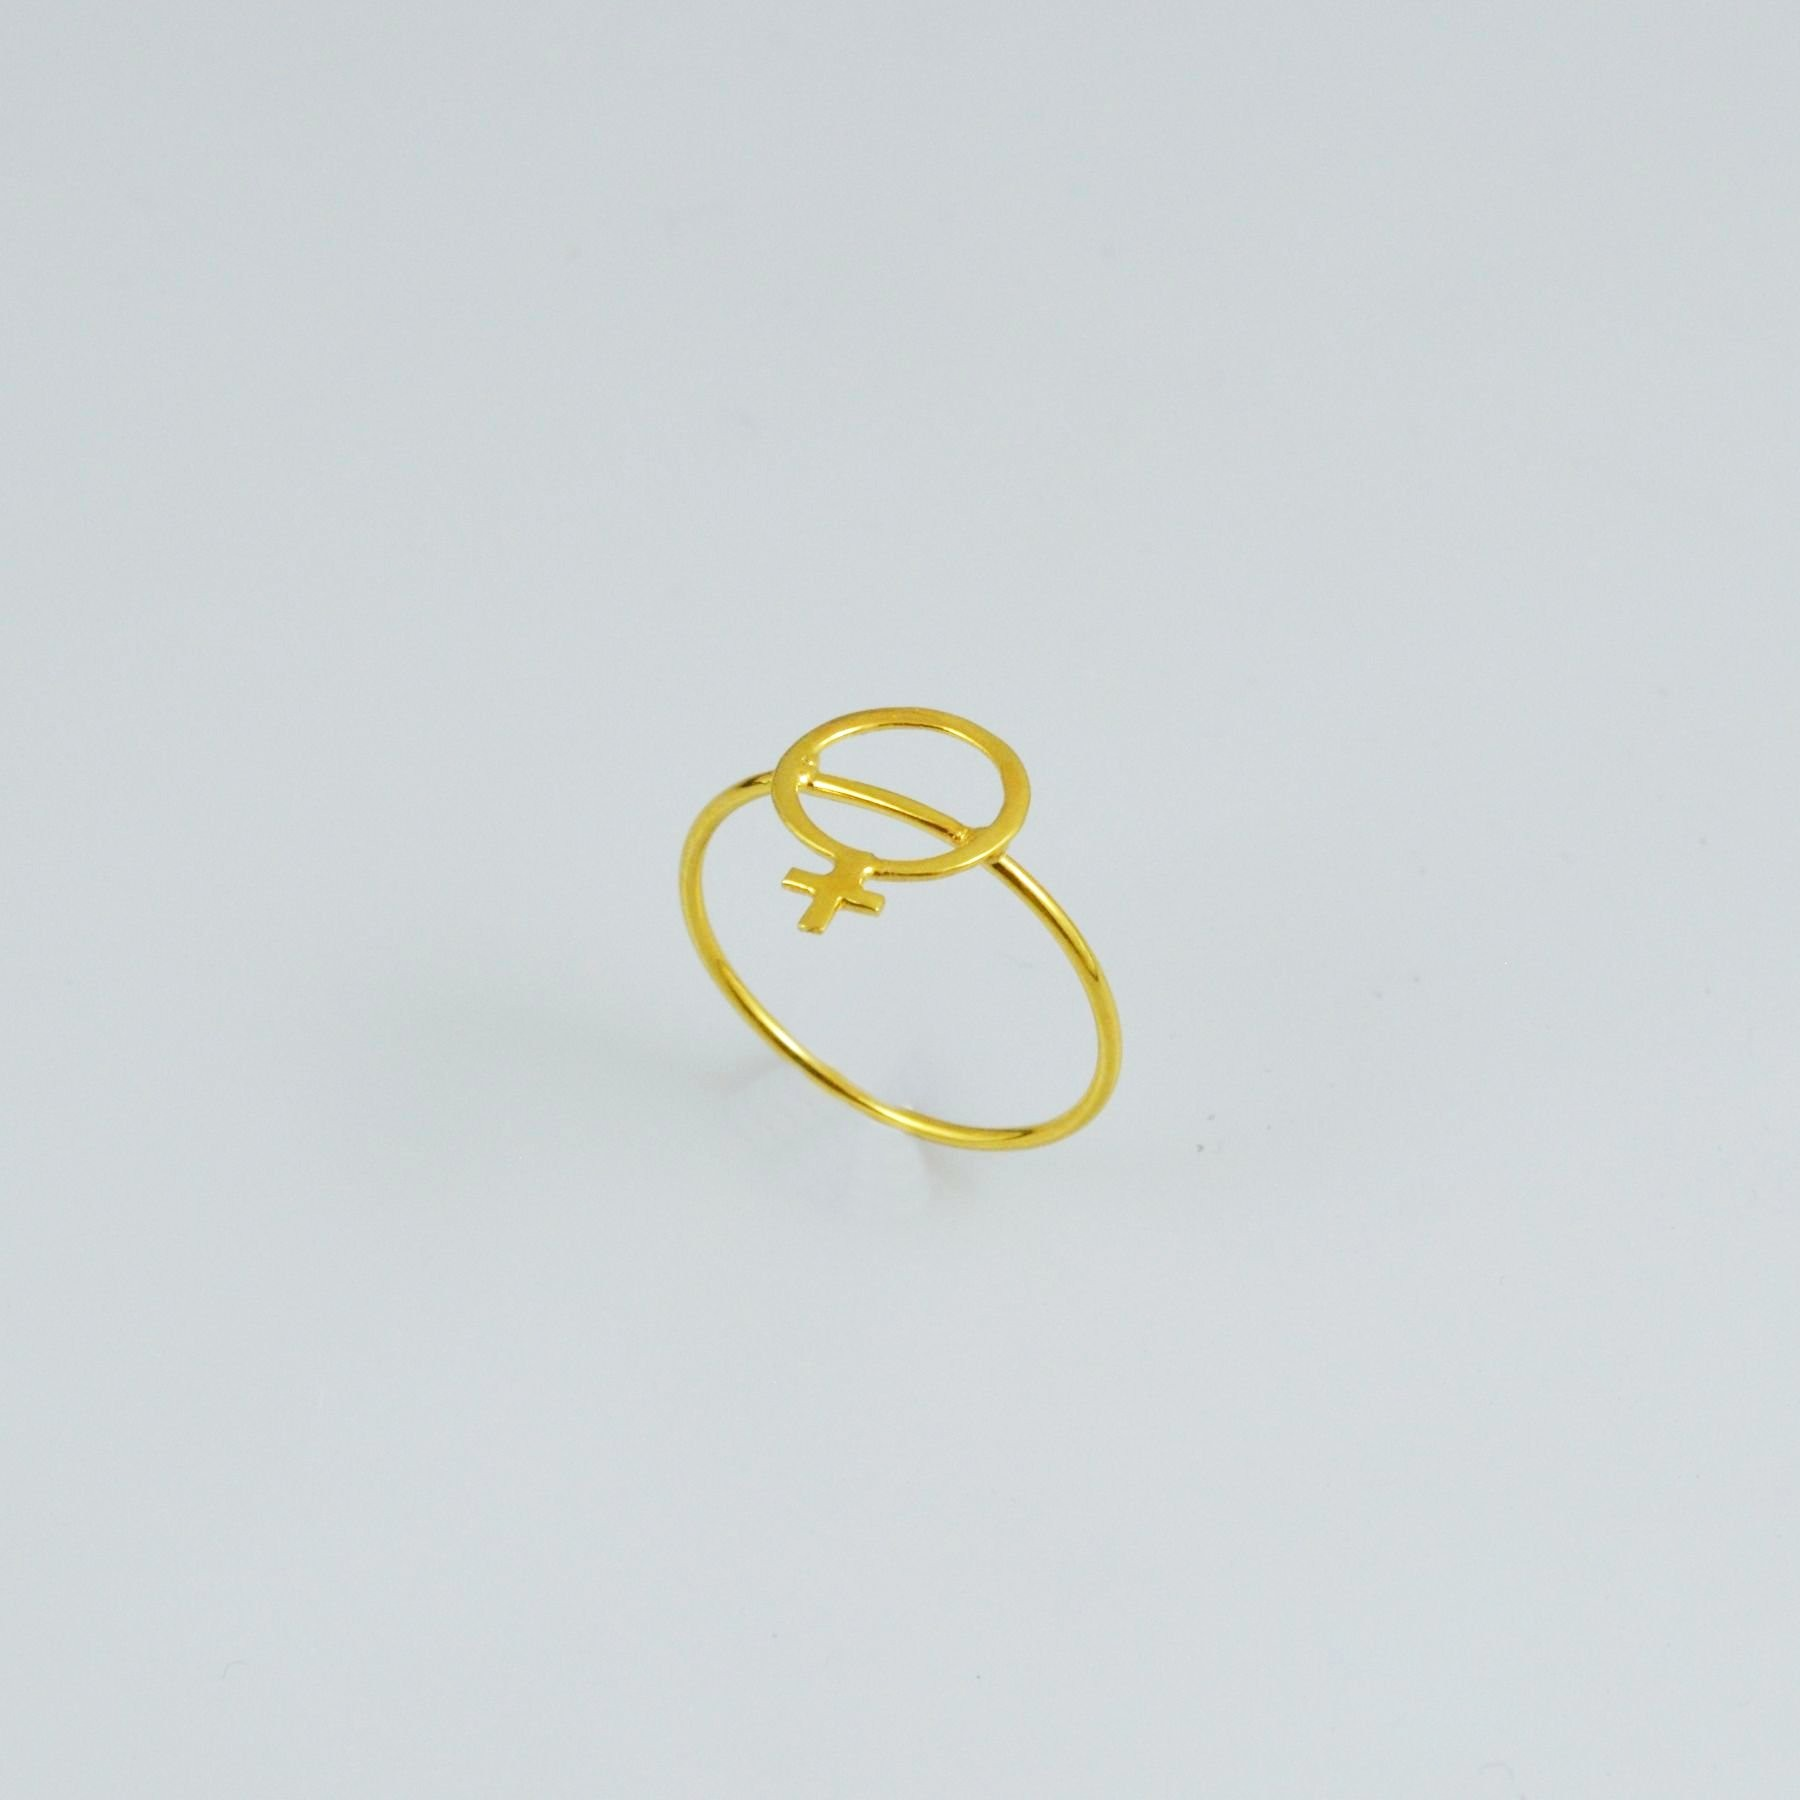 Handmade gold ring 14K